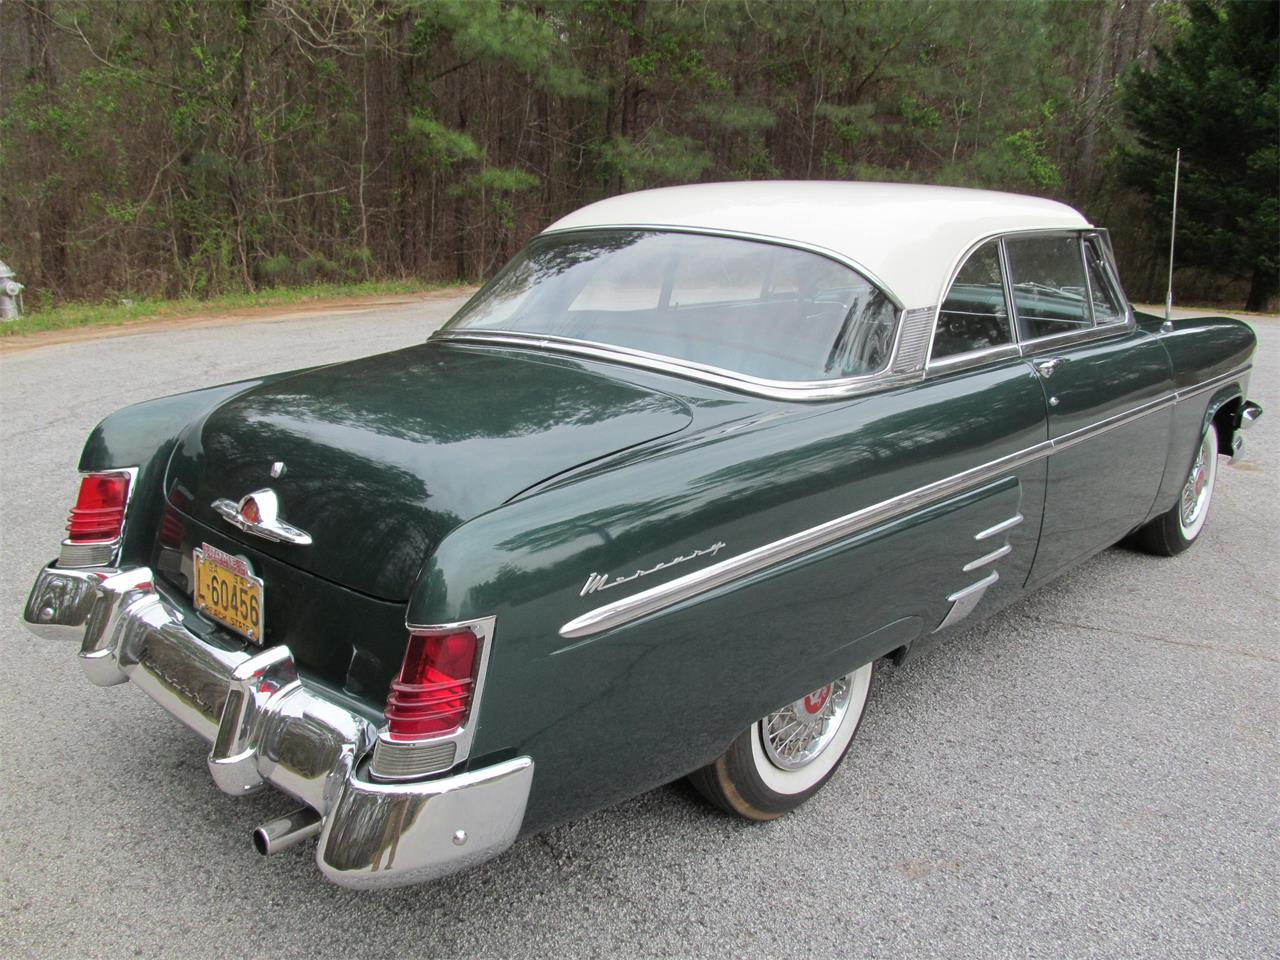 Large Picture of Classic '54 Mercury Monterey located in Fayetteville Georgia - $24,900.00 - N46J